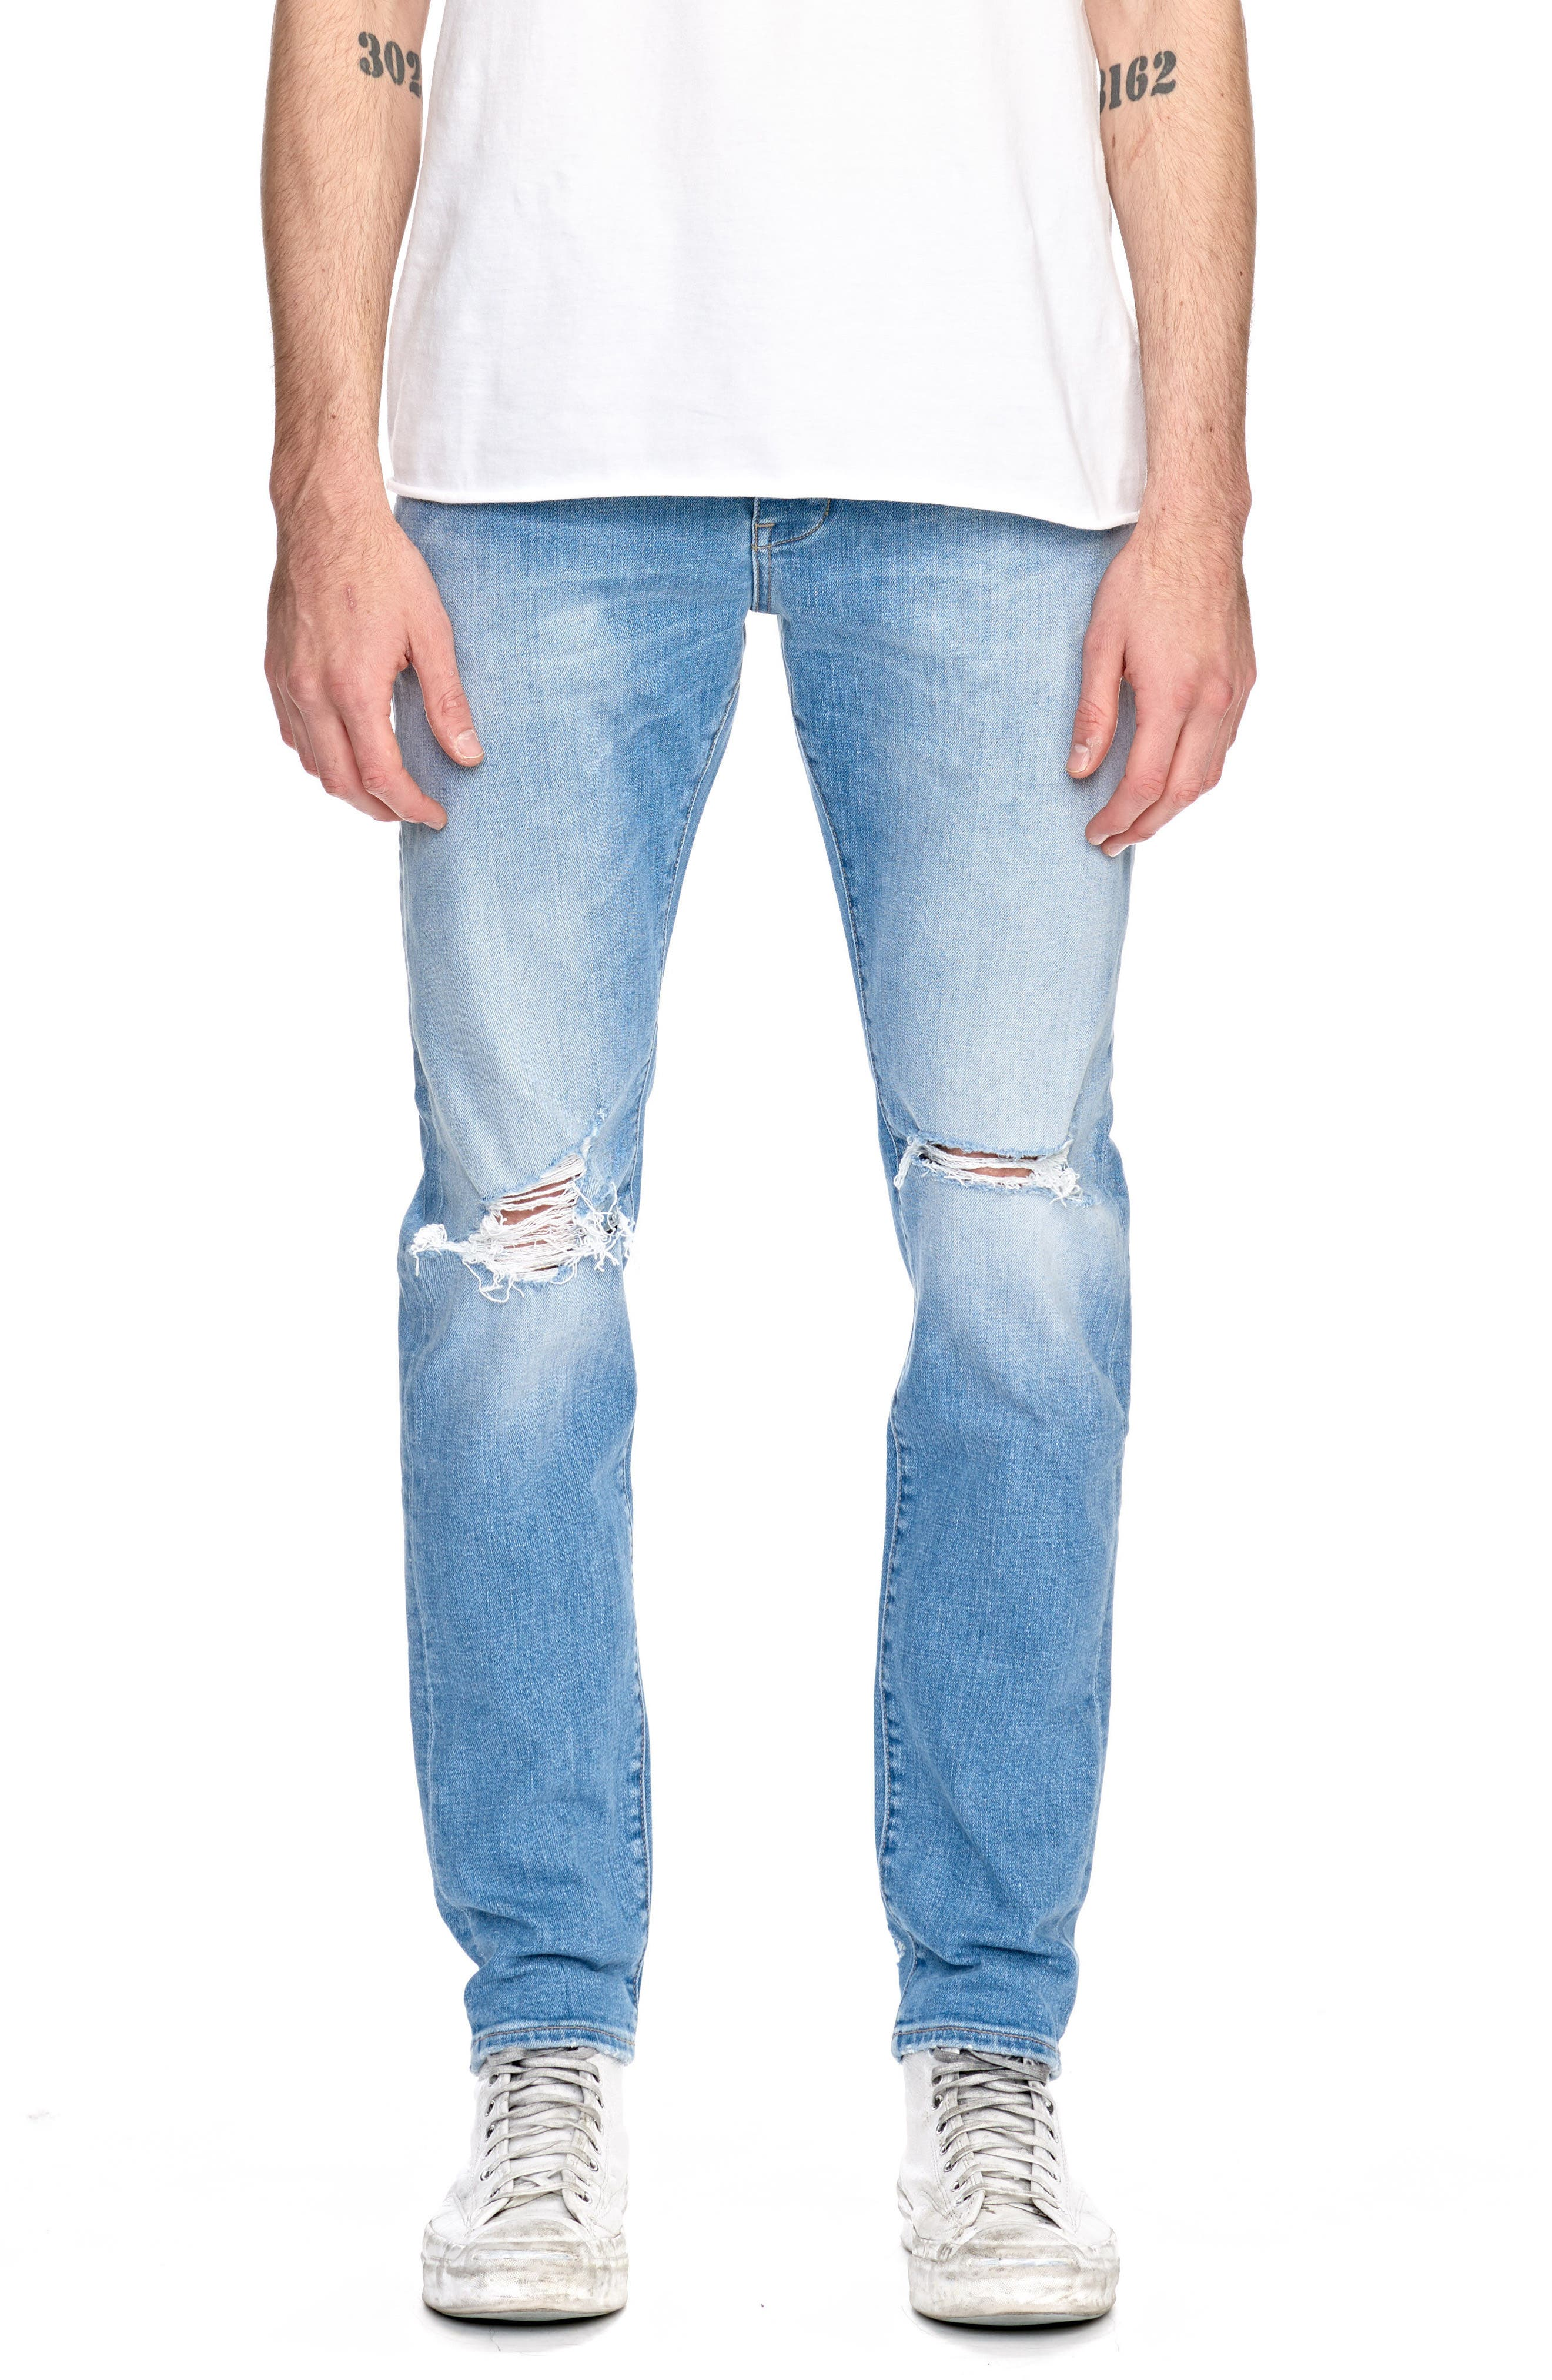 Alternate Image 1 Selected - NEUW Iggy Skinny Fit Jeans (Noam)